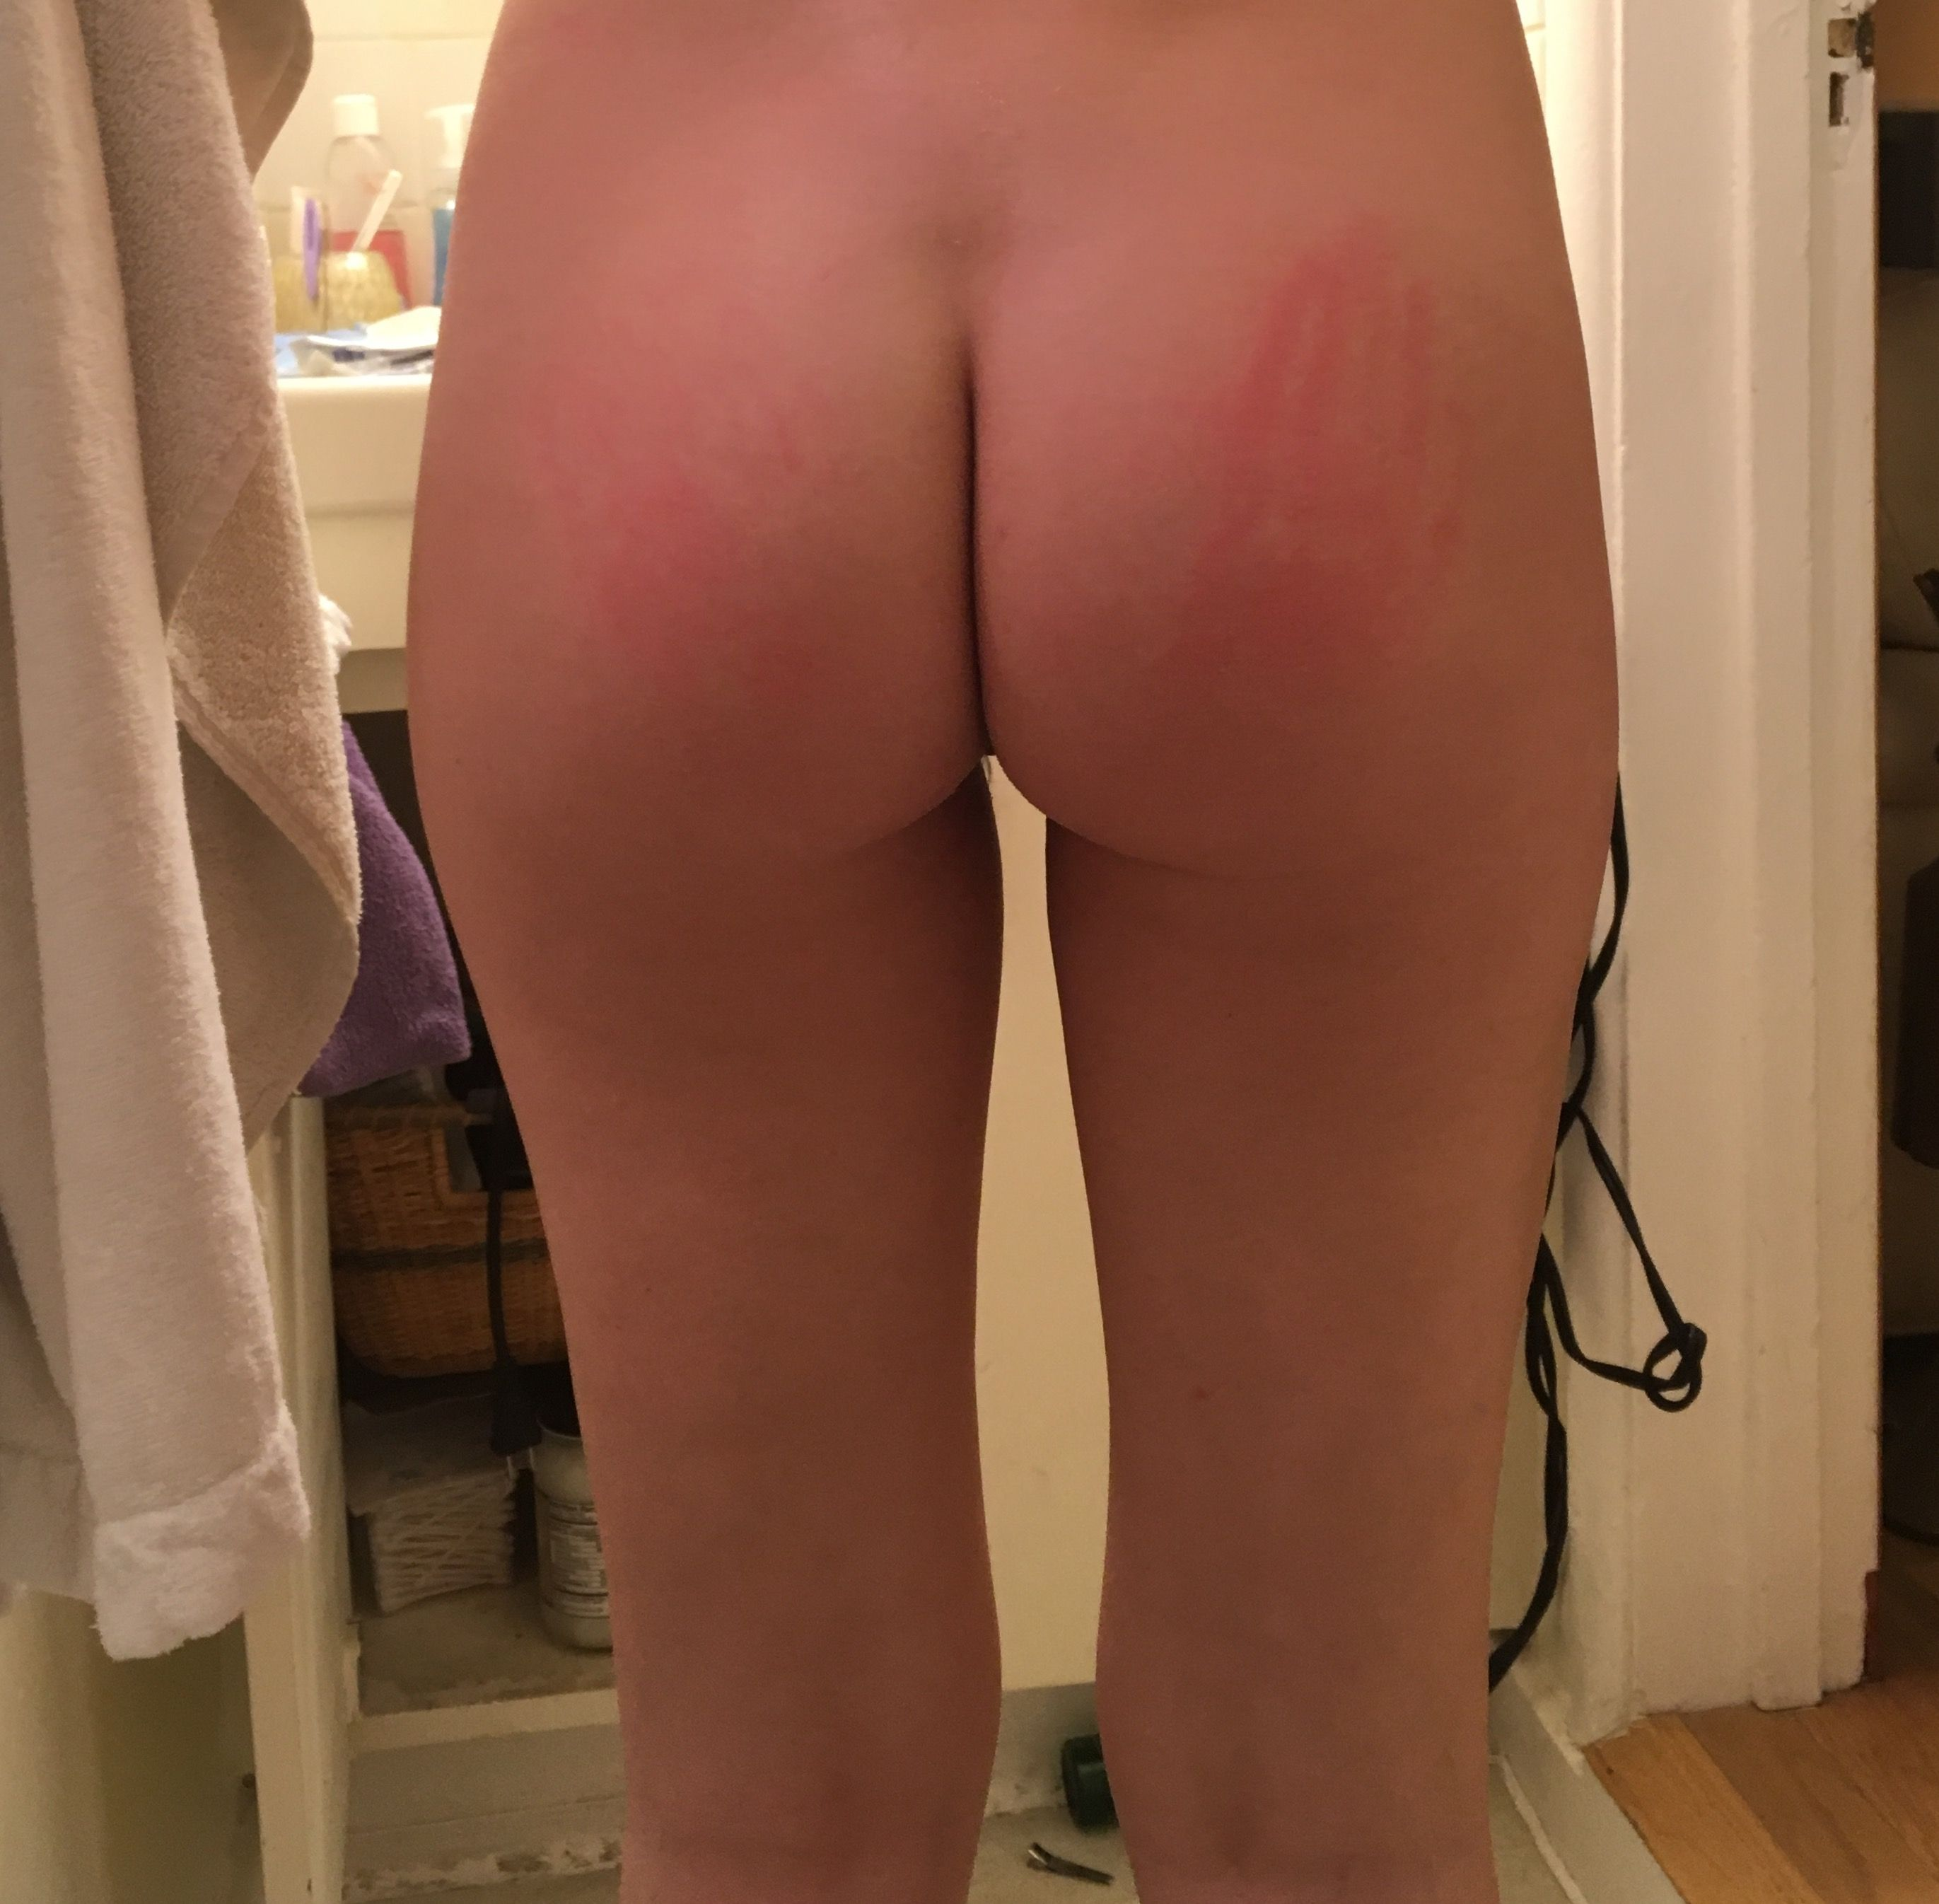 Addison-Timlin-Leaked-1-thefappening_nu_5605e1a.jpg